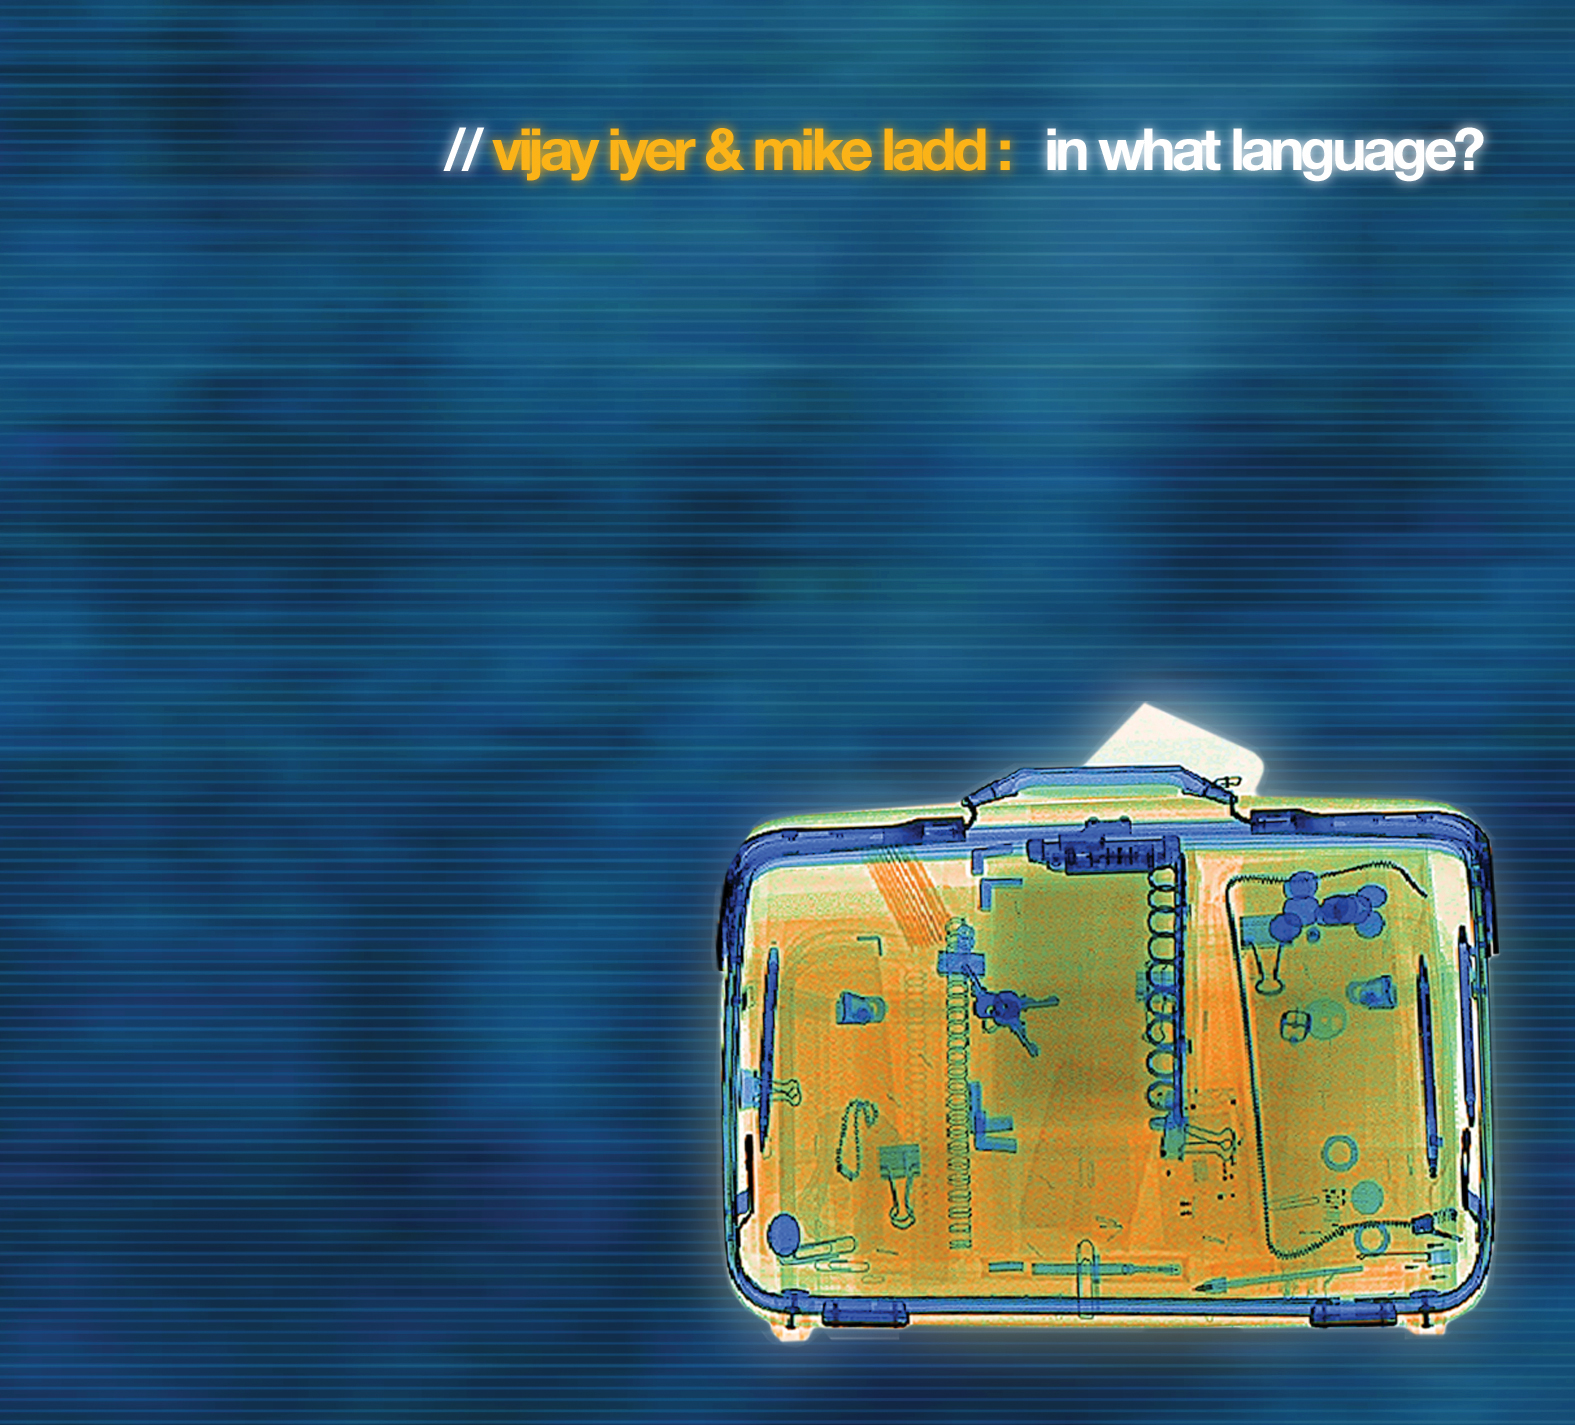 In What Language? - Vijay Iyer & Mike Ladd